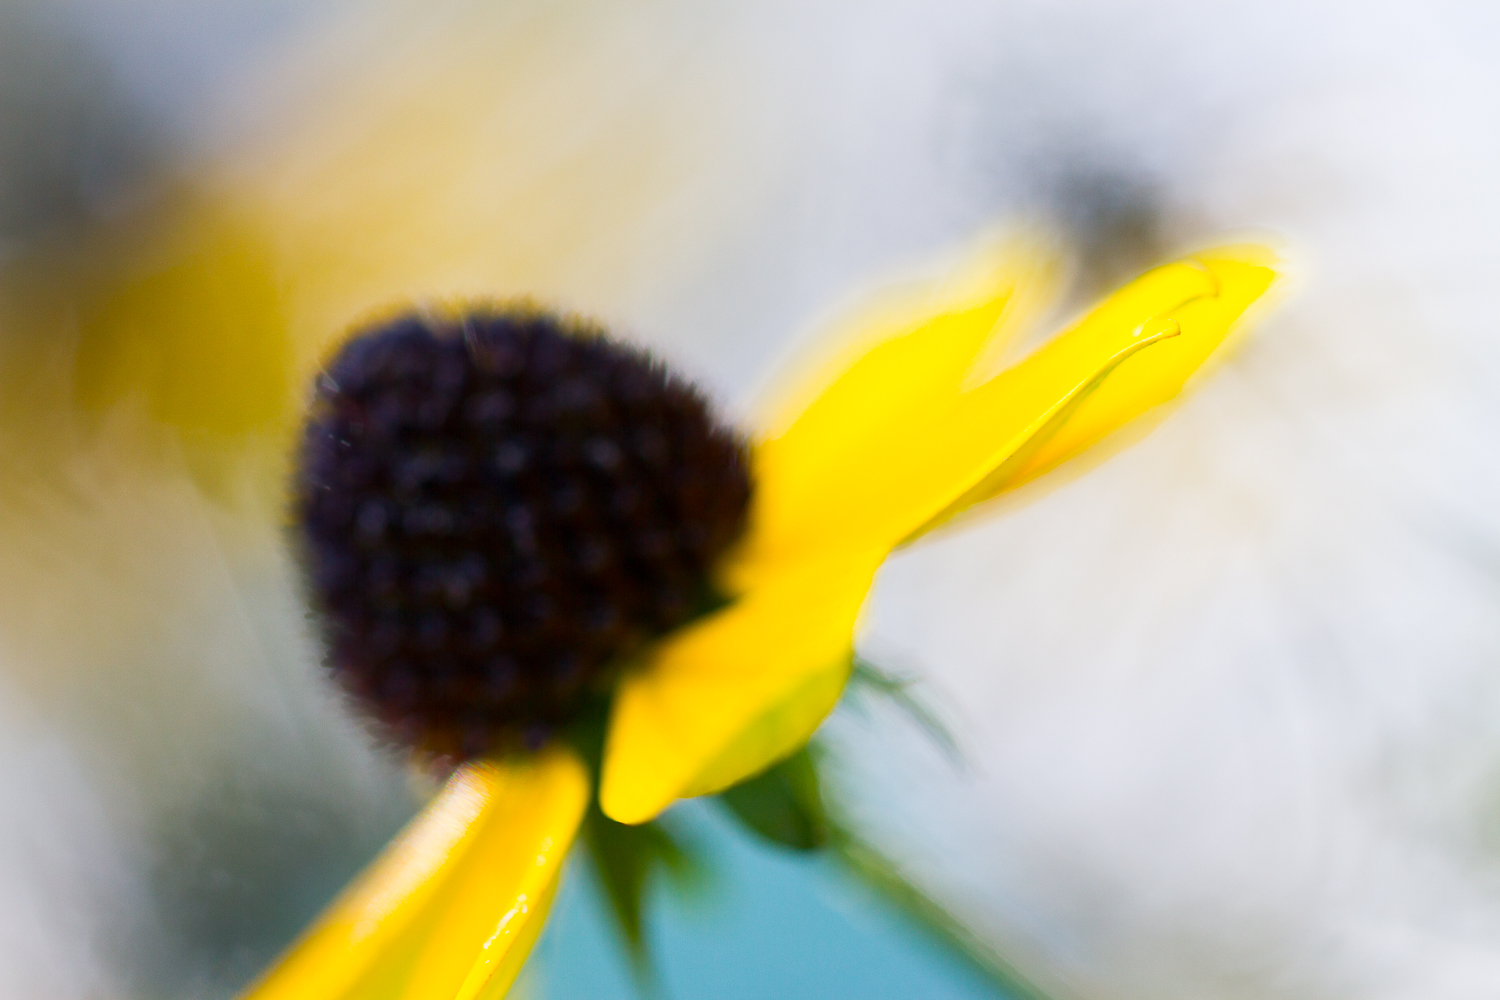 macro flower bokeh photography - Four Ways to Generate Stunning Bokeh in Your Images